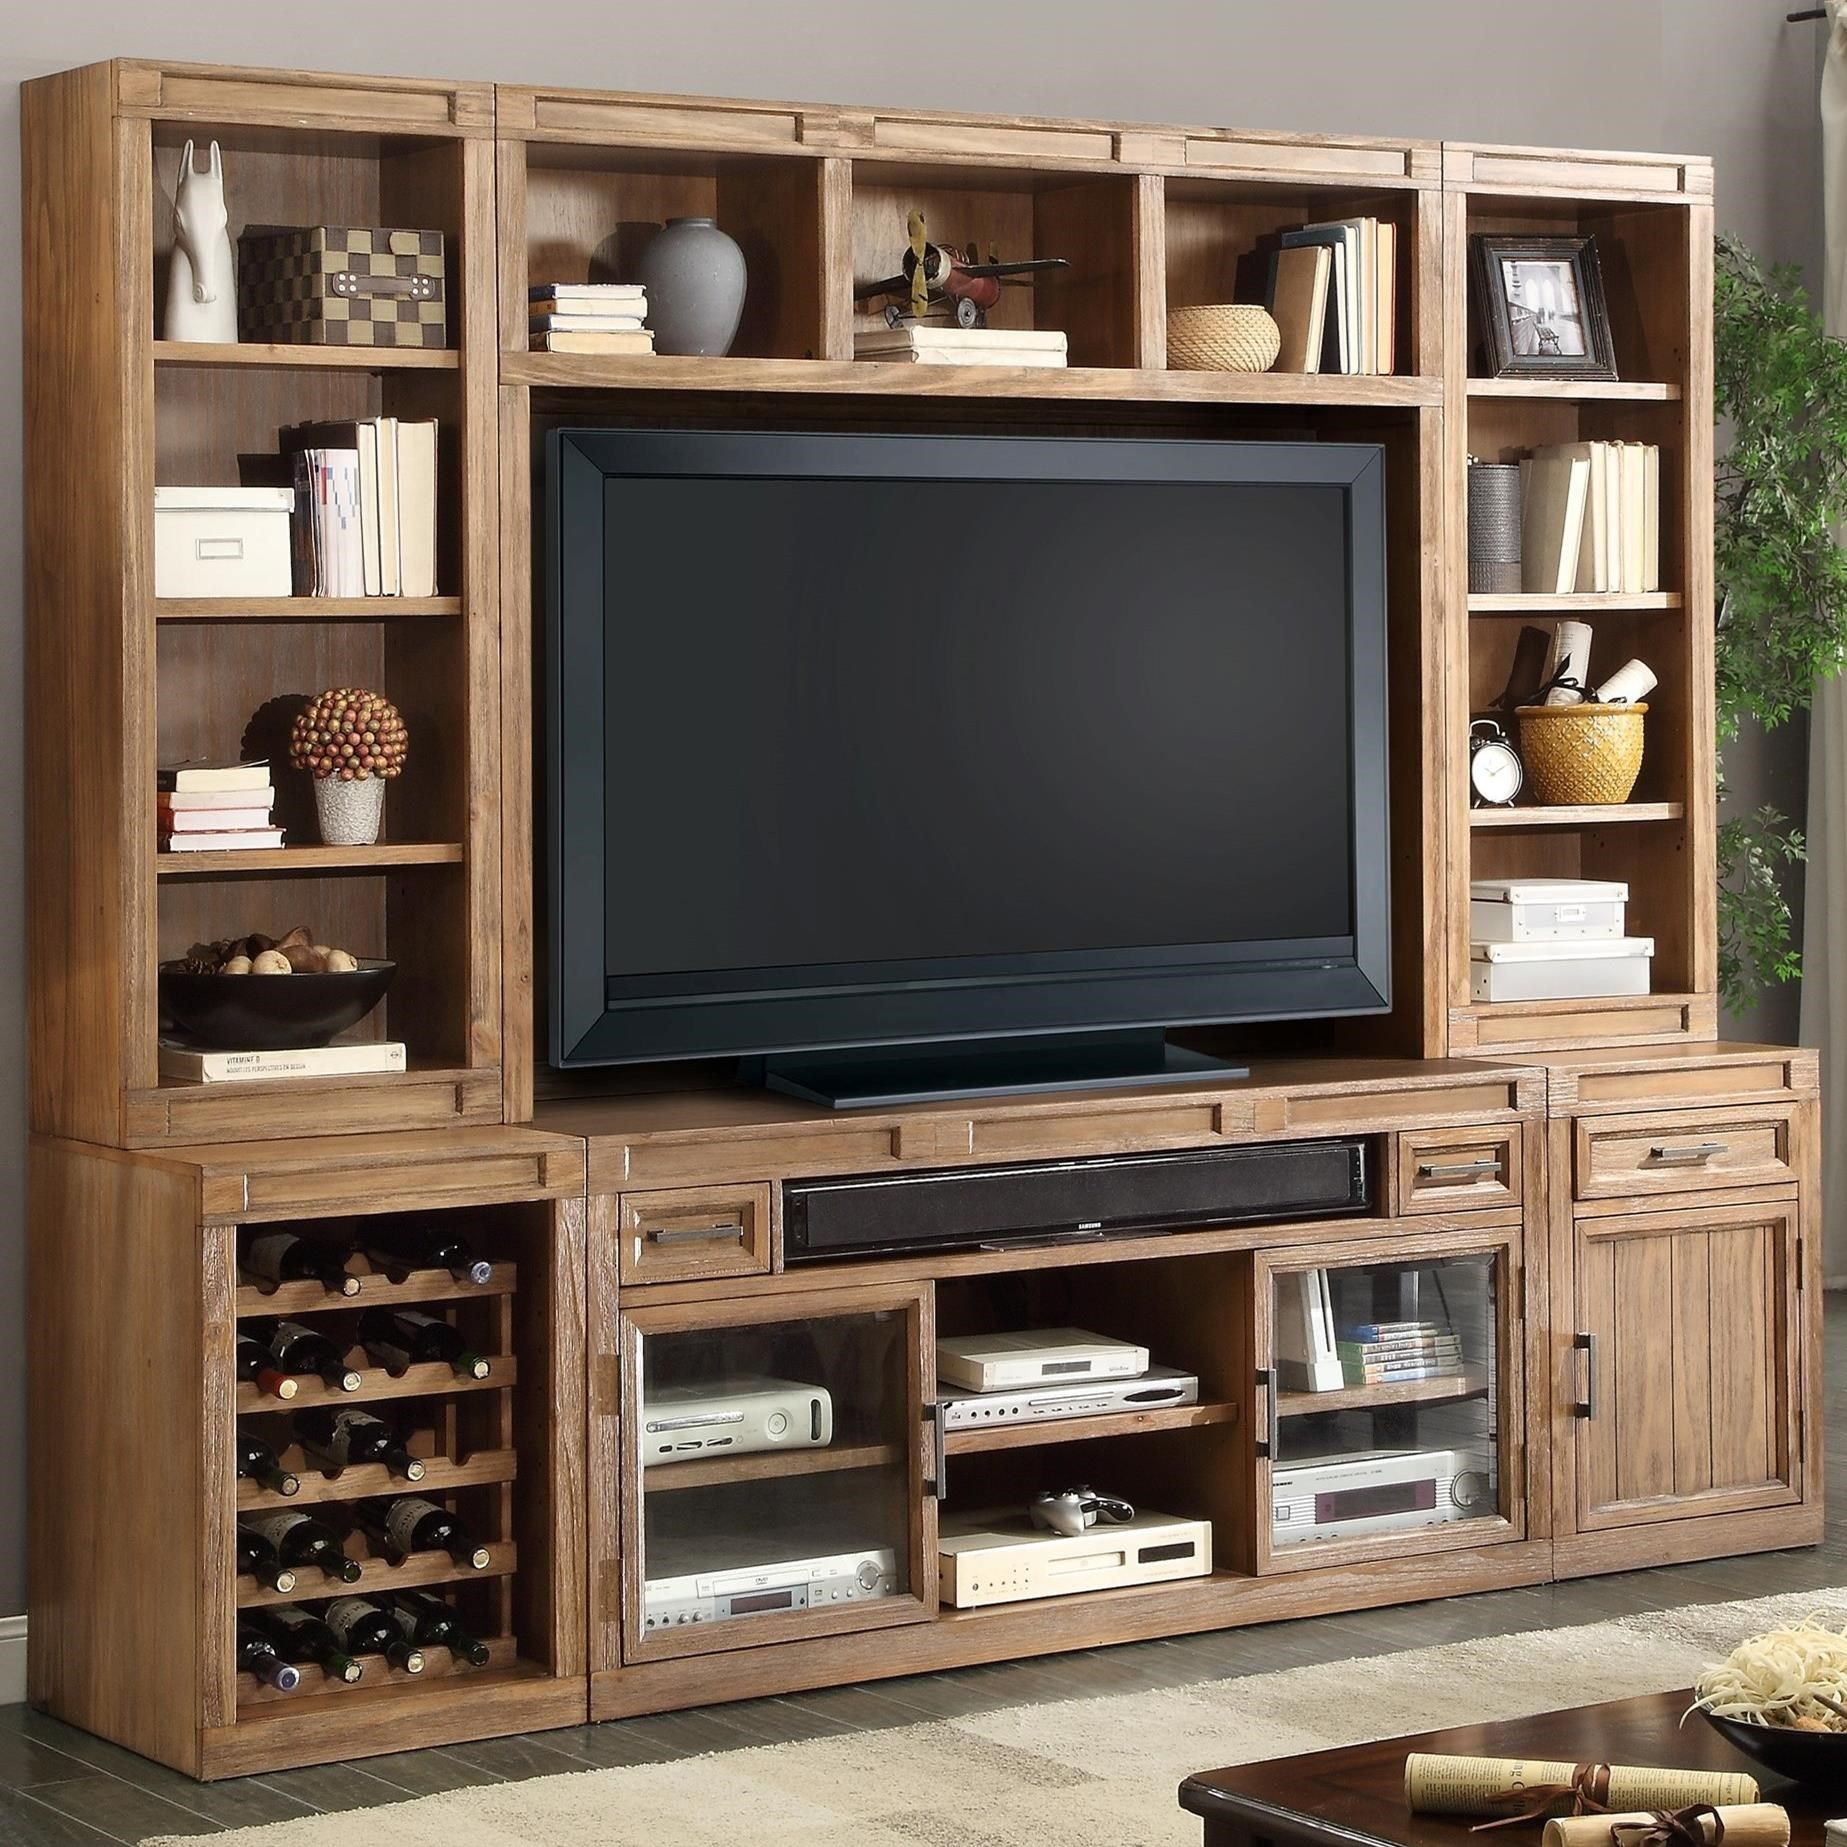 Ordinaire Shop For The Parker House Hickory Creek 6 Piece TV Console Set At Godby  Home Furnishings   Your Noblesville, Carmel, Avon, Indianapolis, Indiana  Furniture ...